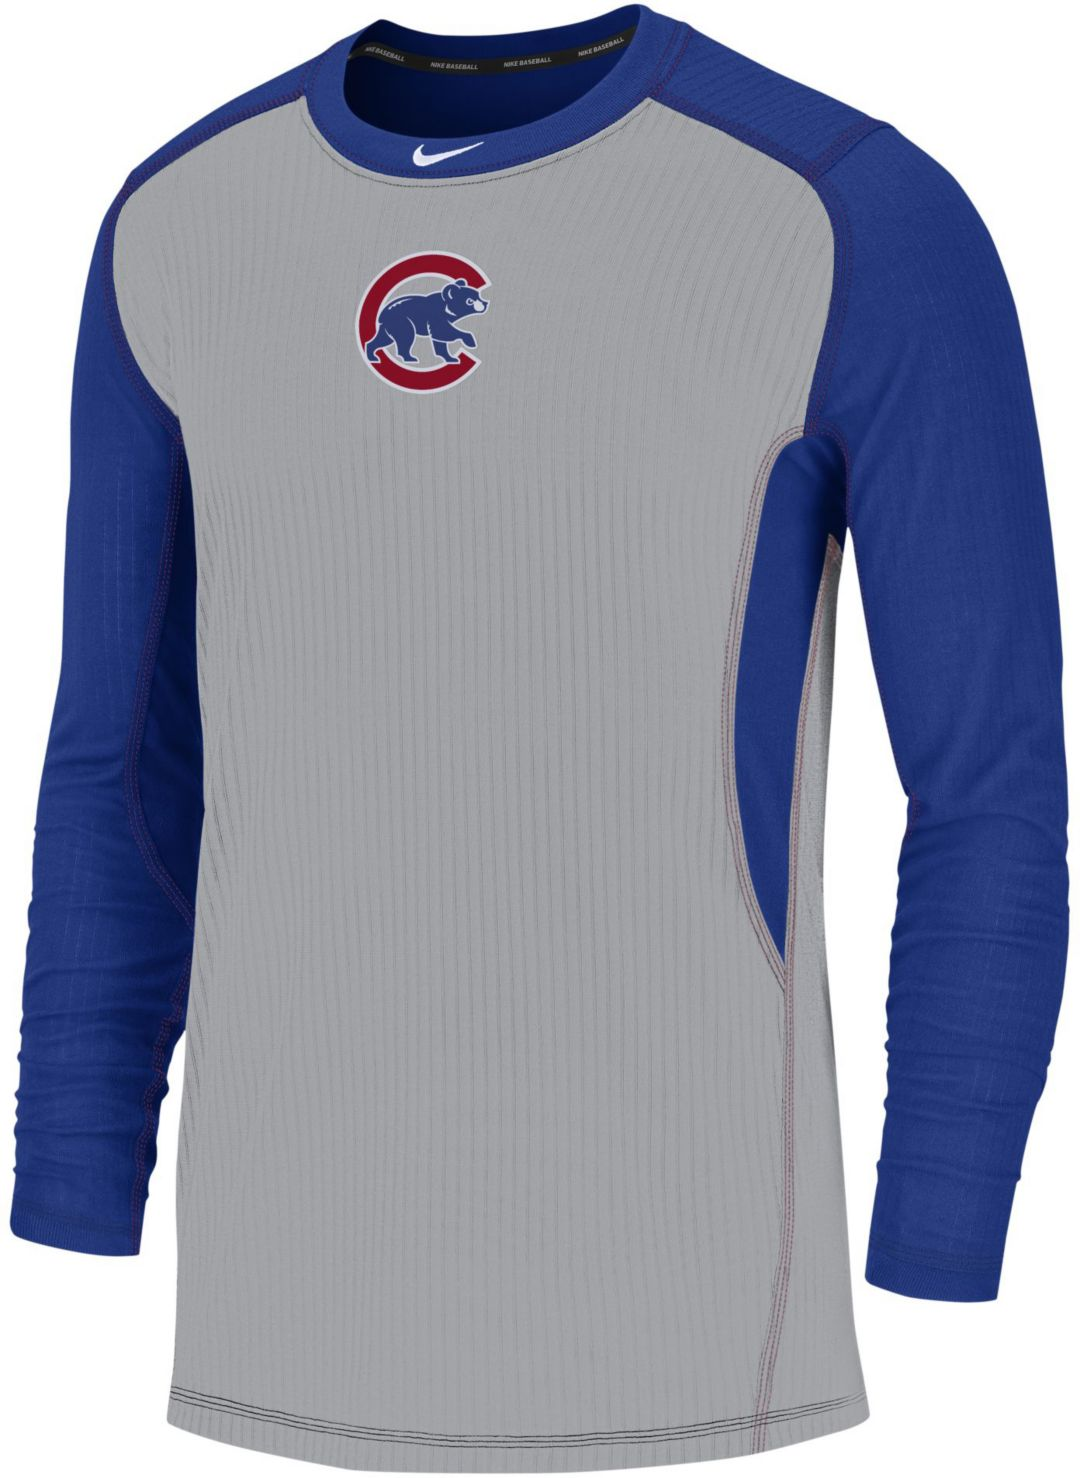 da3a18666 Nike Men's Chicago Cubs Authentic Collection Dri-FIT Long Sleeve Top ...